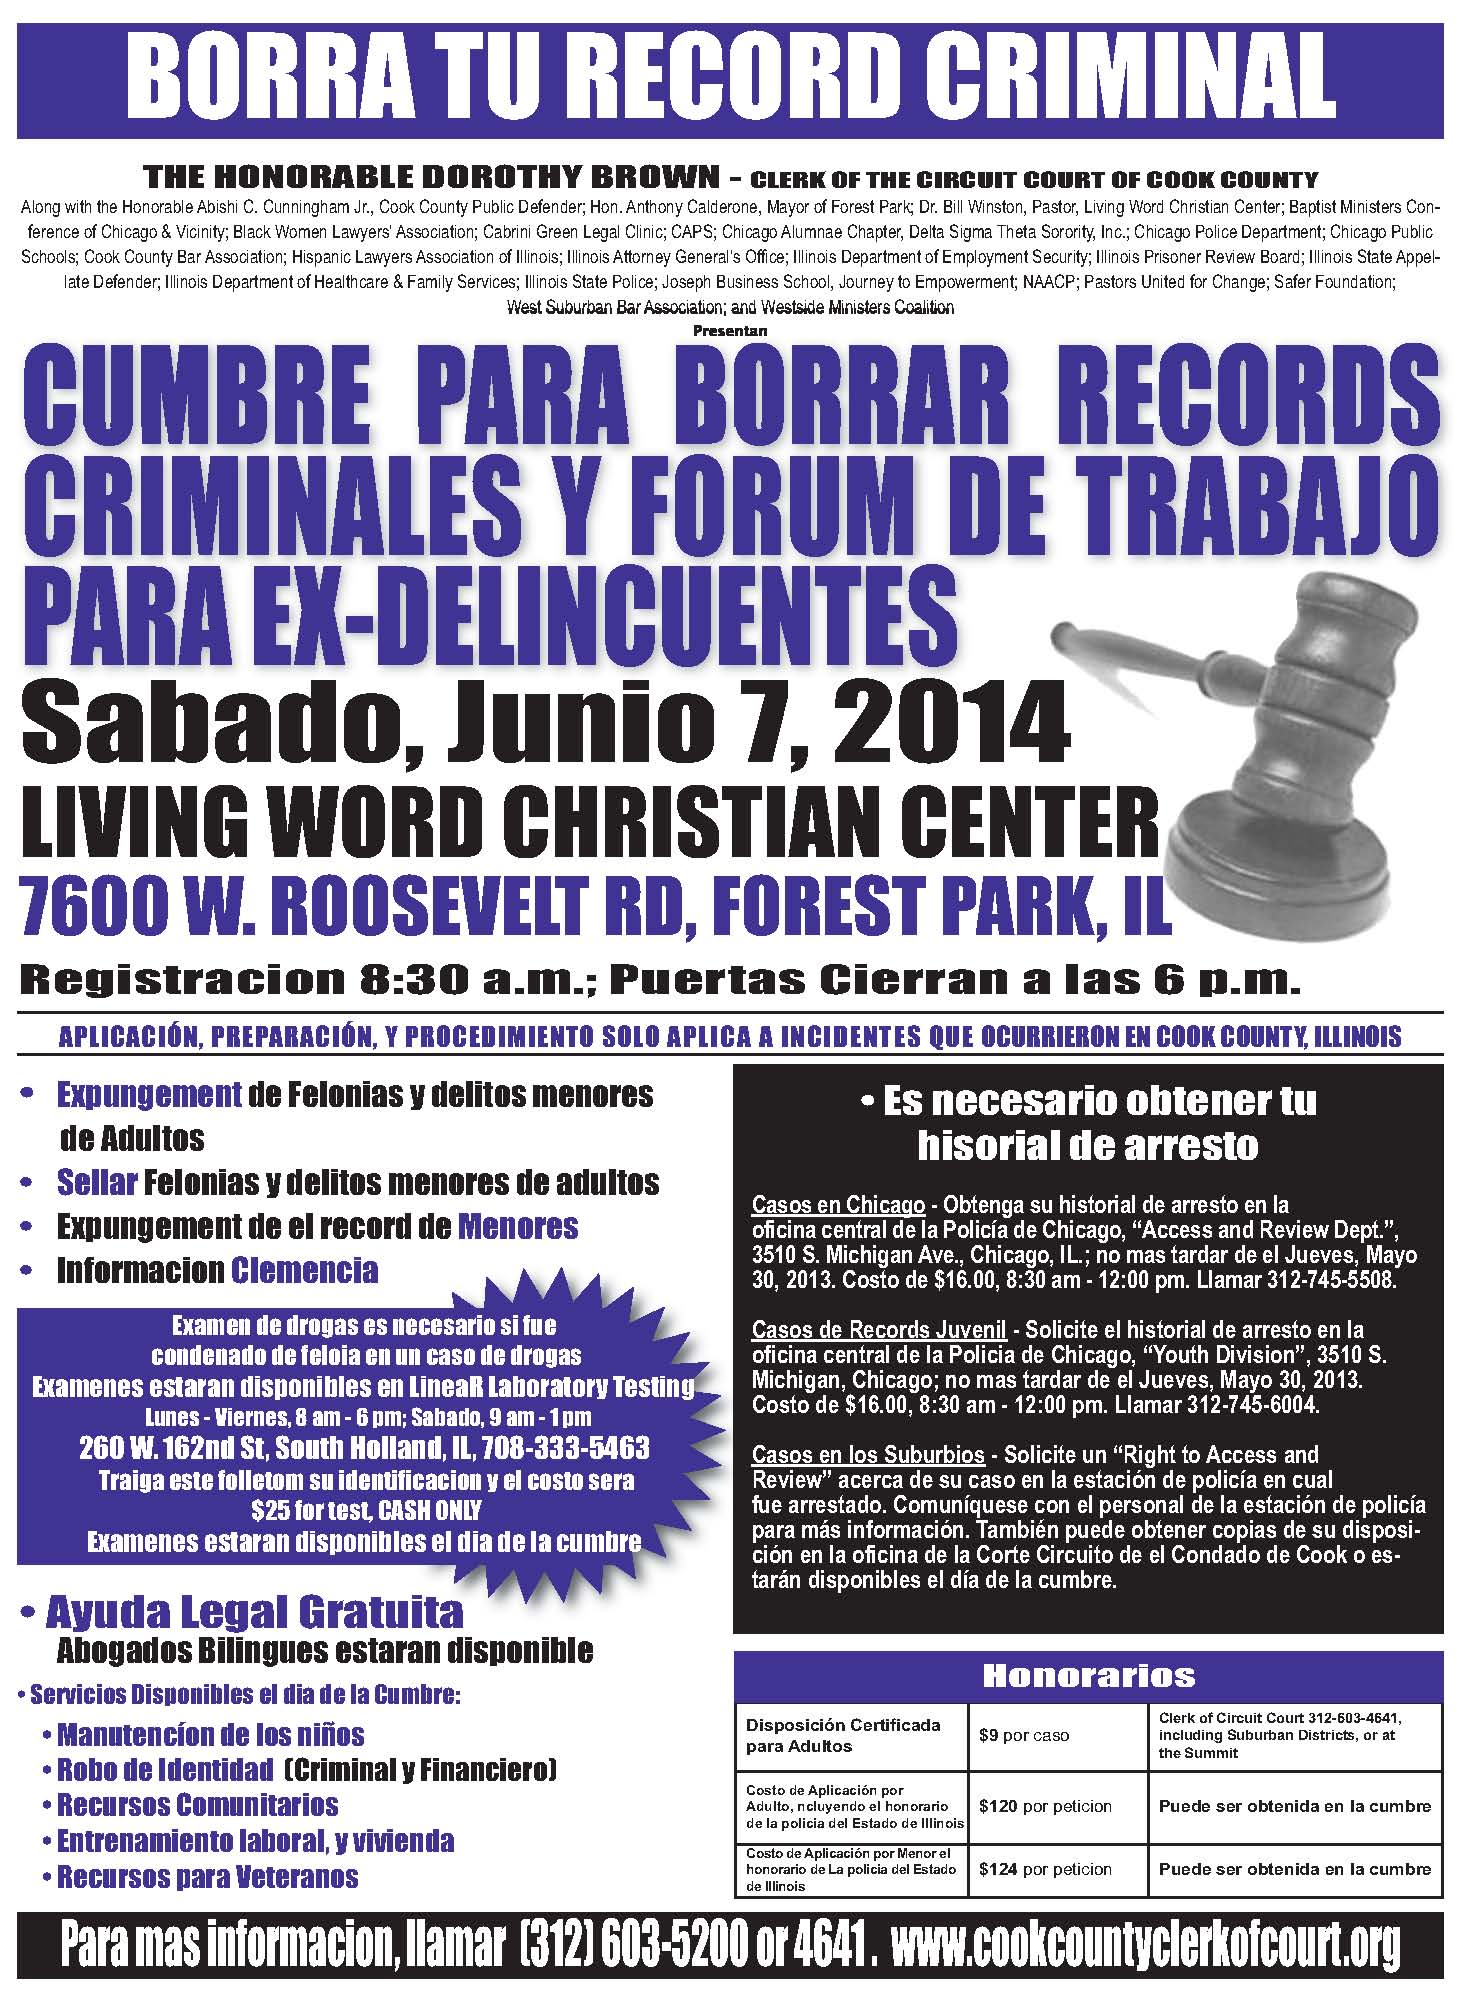 2014 Expungement flyer bilingual 2sided Page 2